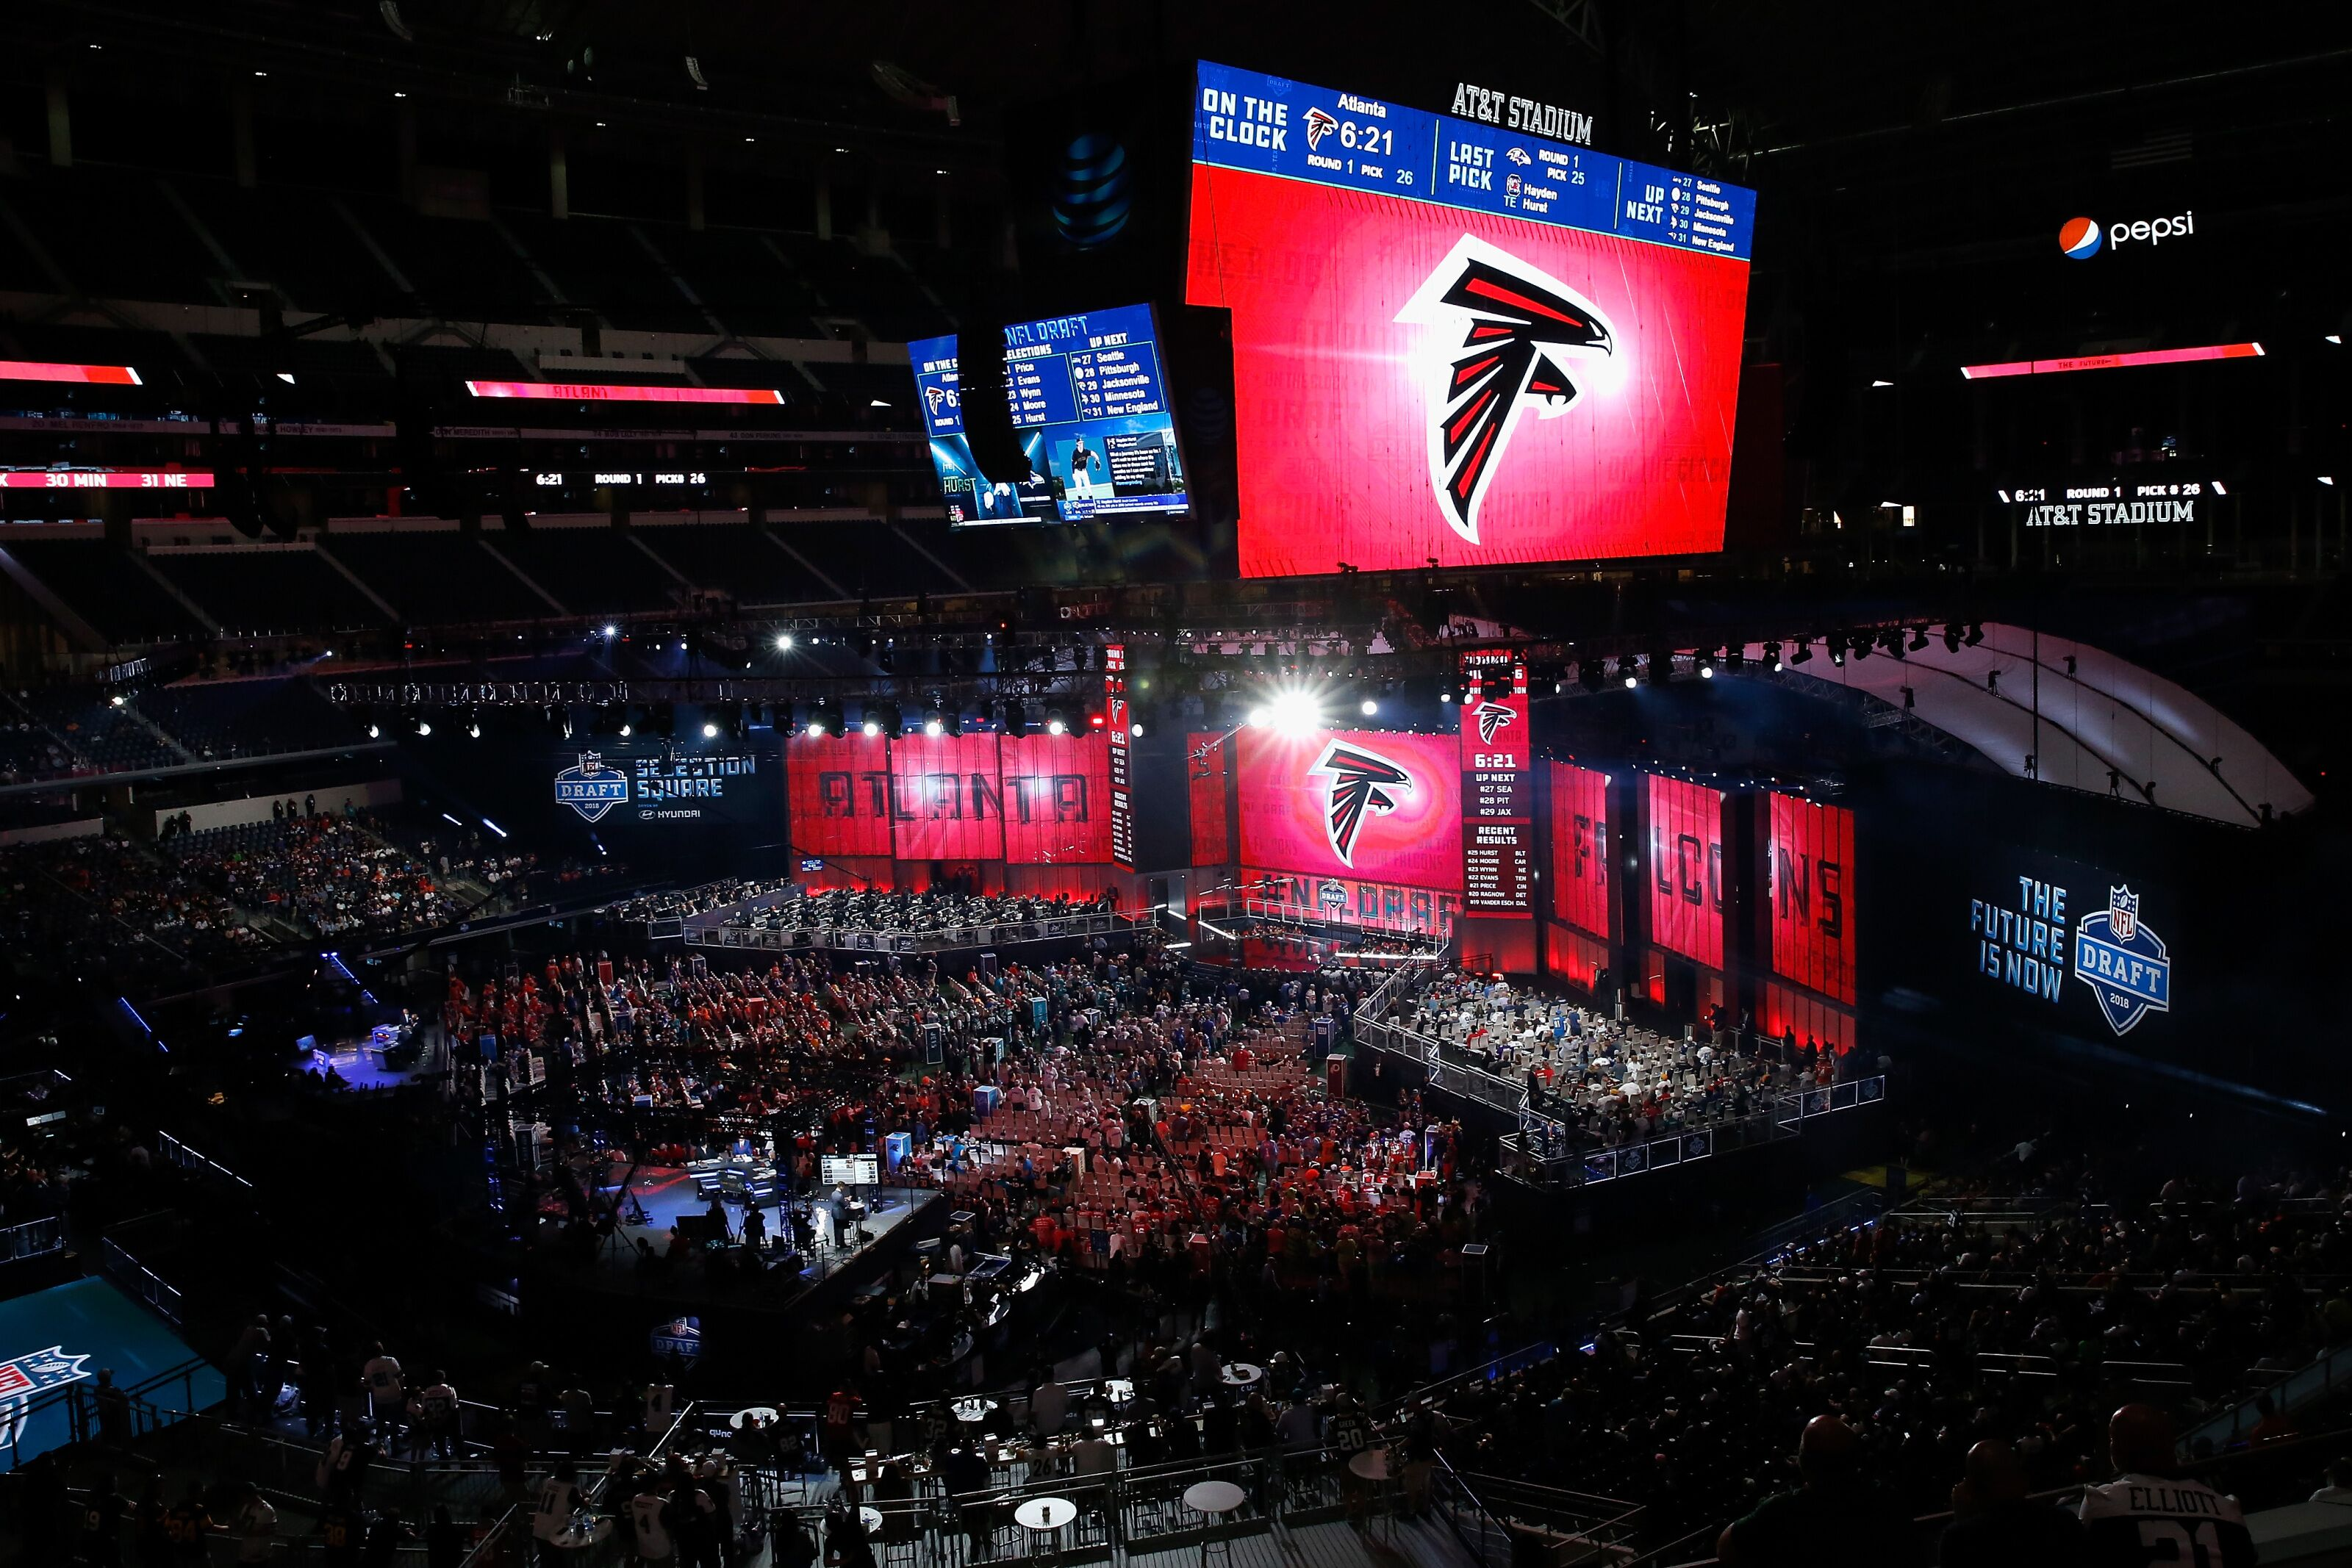 Atlanta Falcons 53-man roster leaves some questions